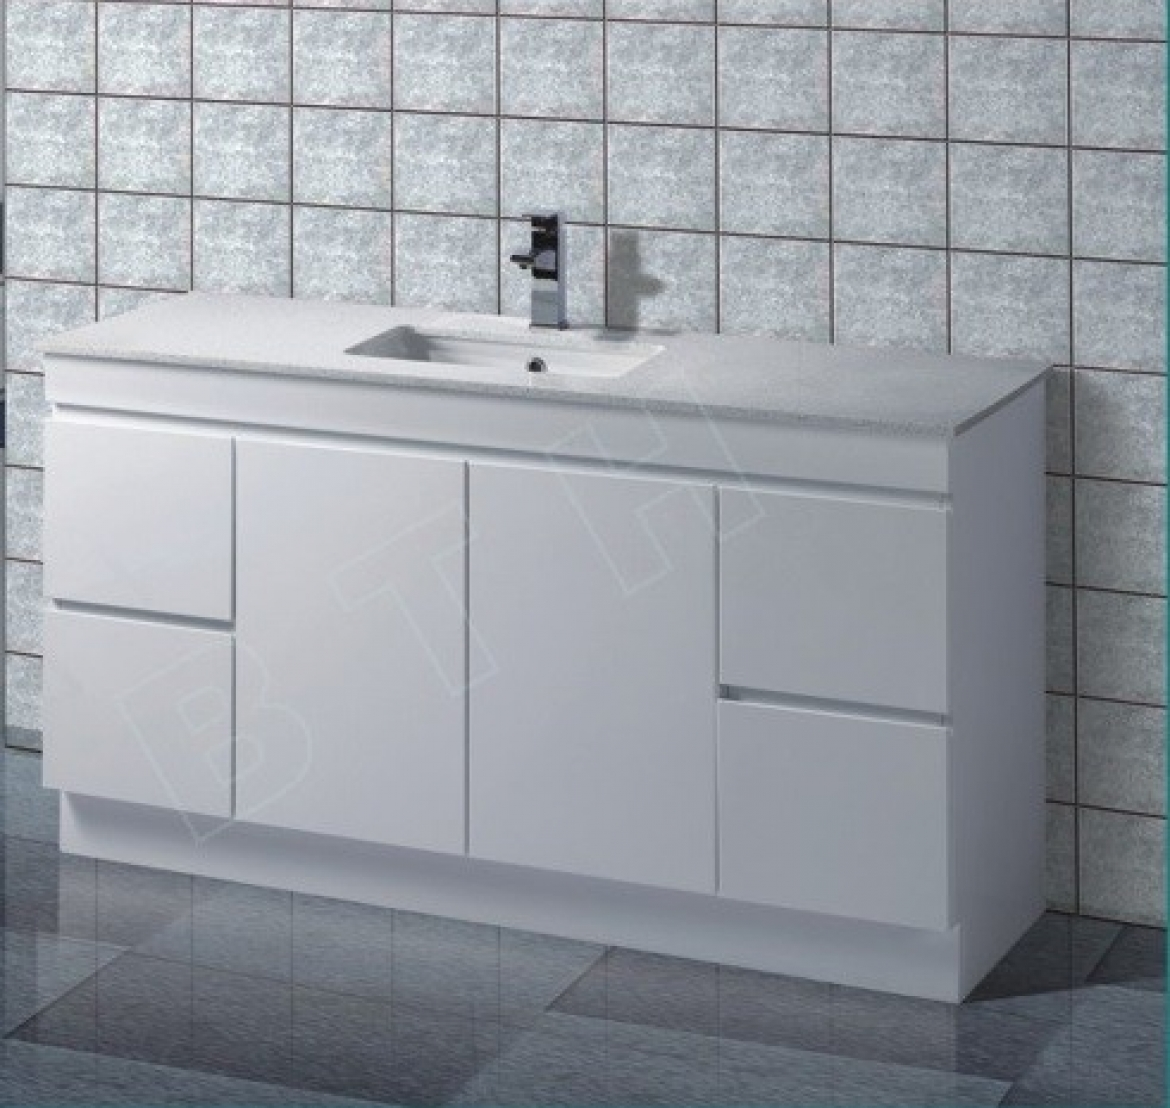 Bathroom stone top vanity [Single Basin-1500 mm]